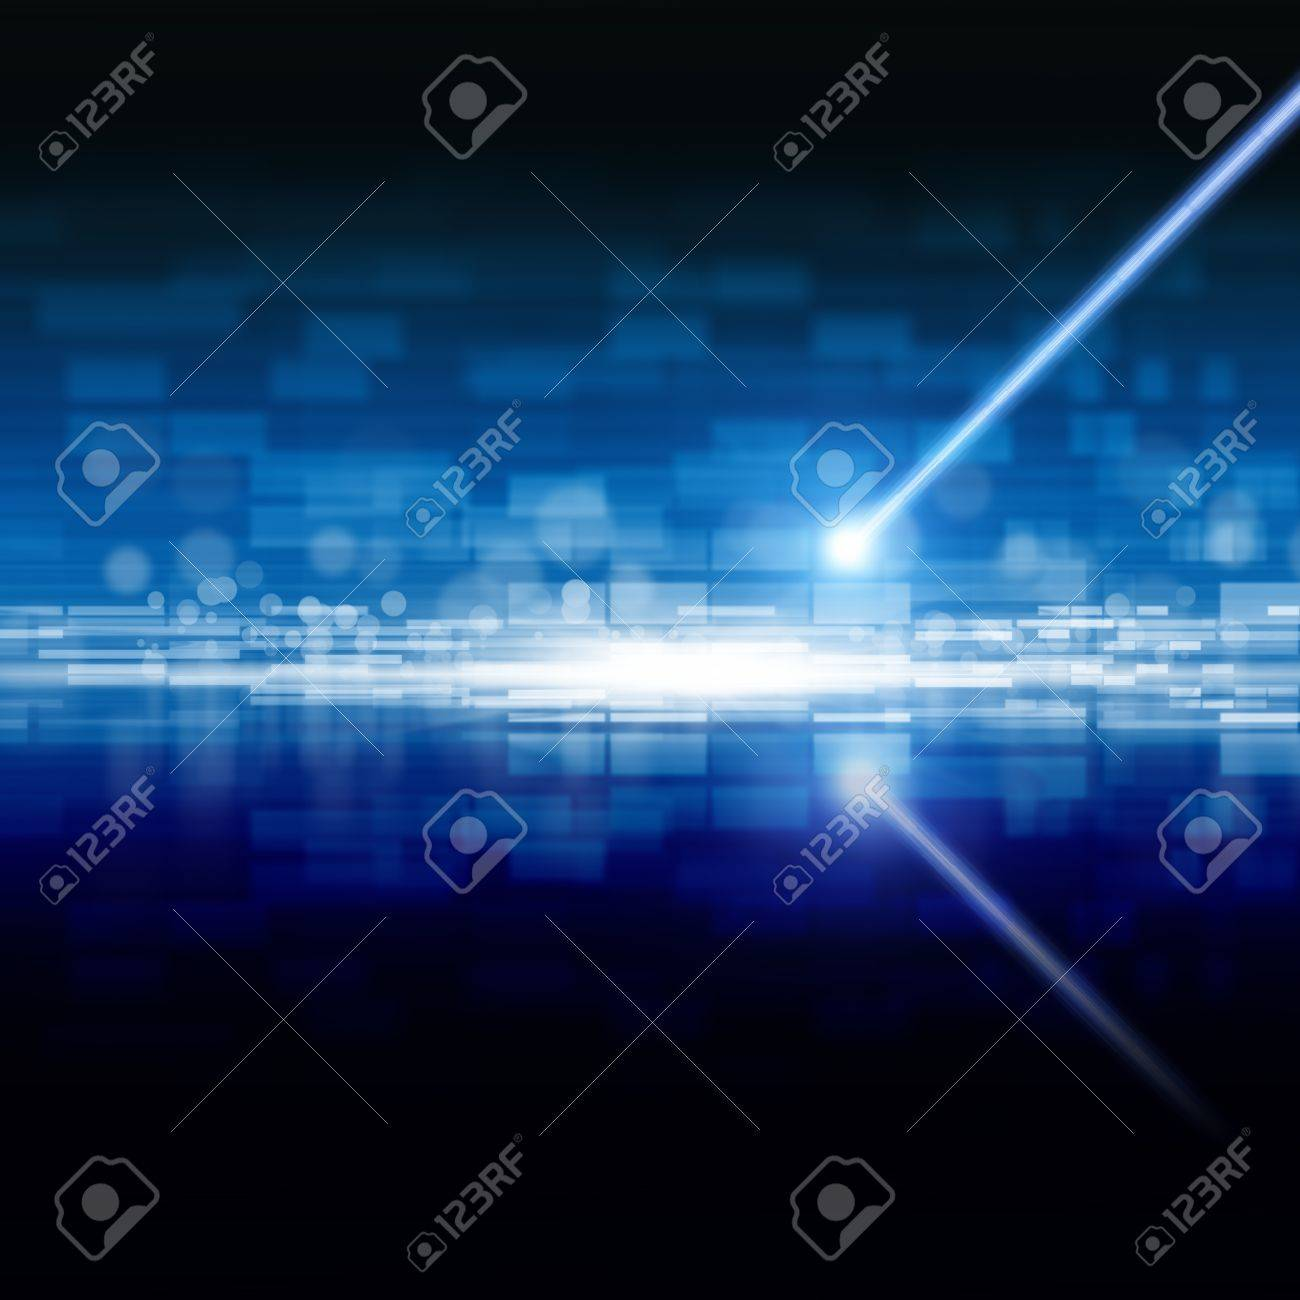 Abstract techologycal backgrond - laser beam, information on optical disk - 13424513